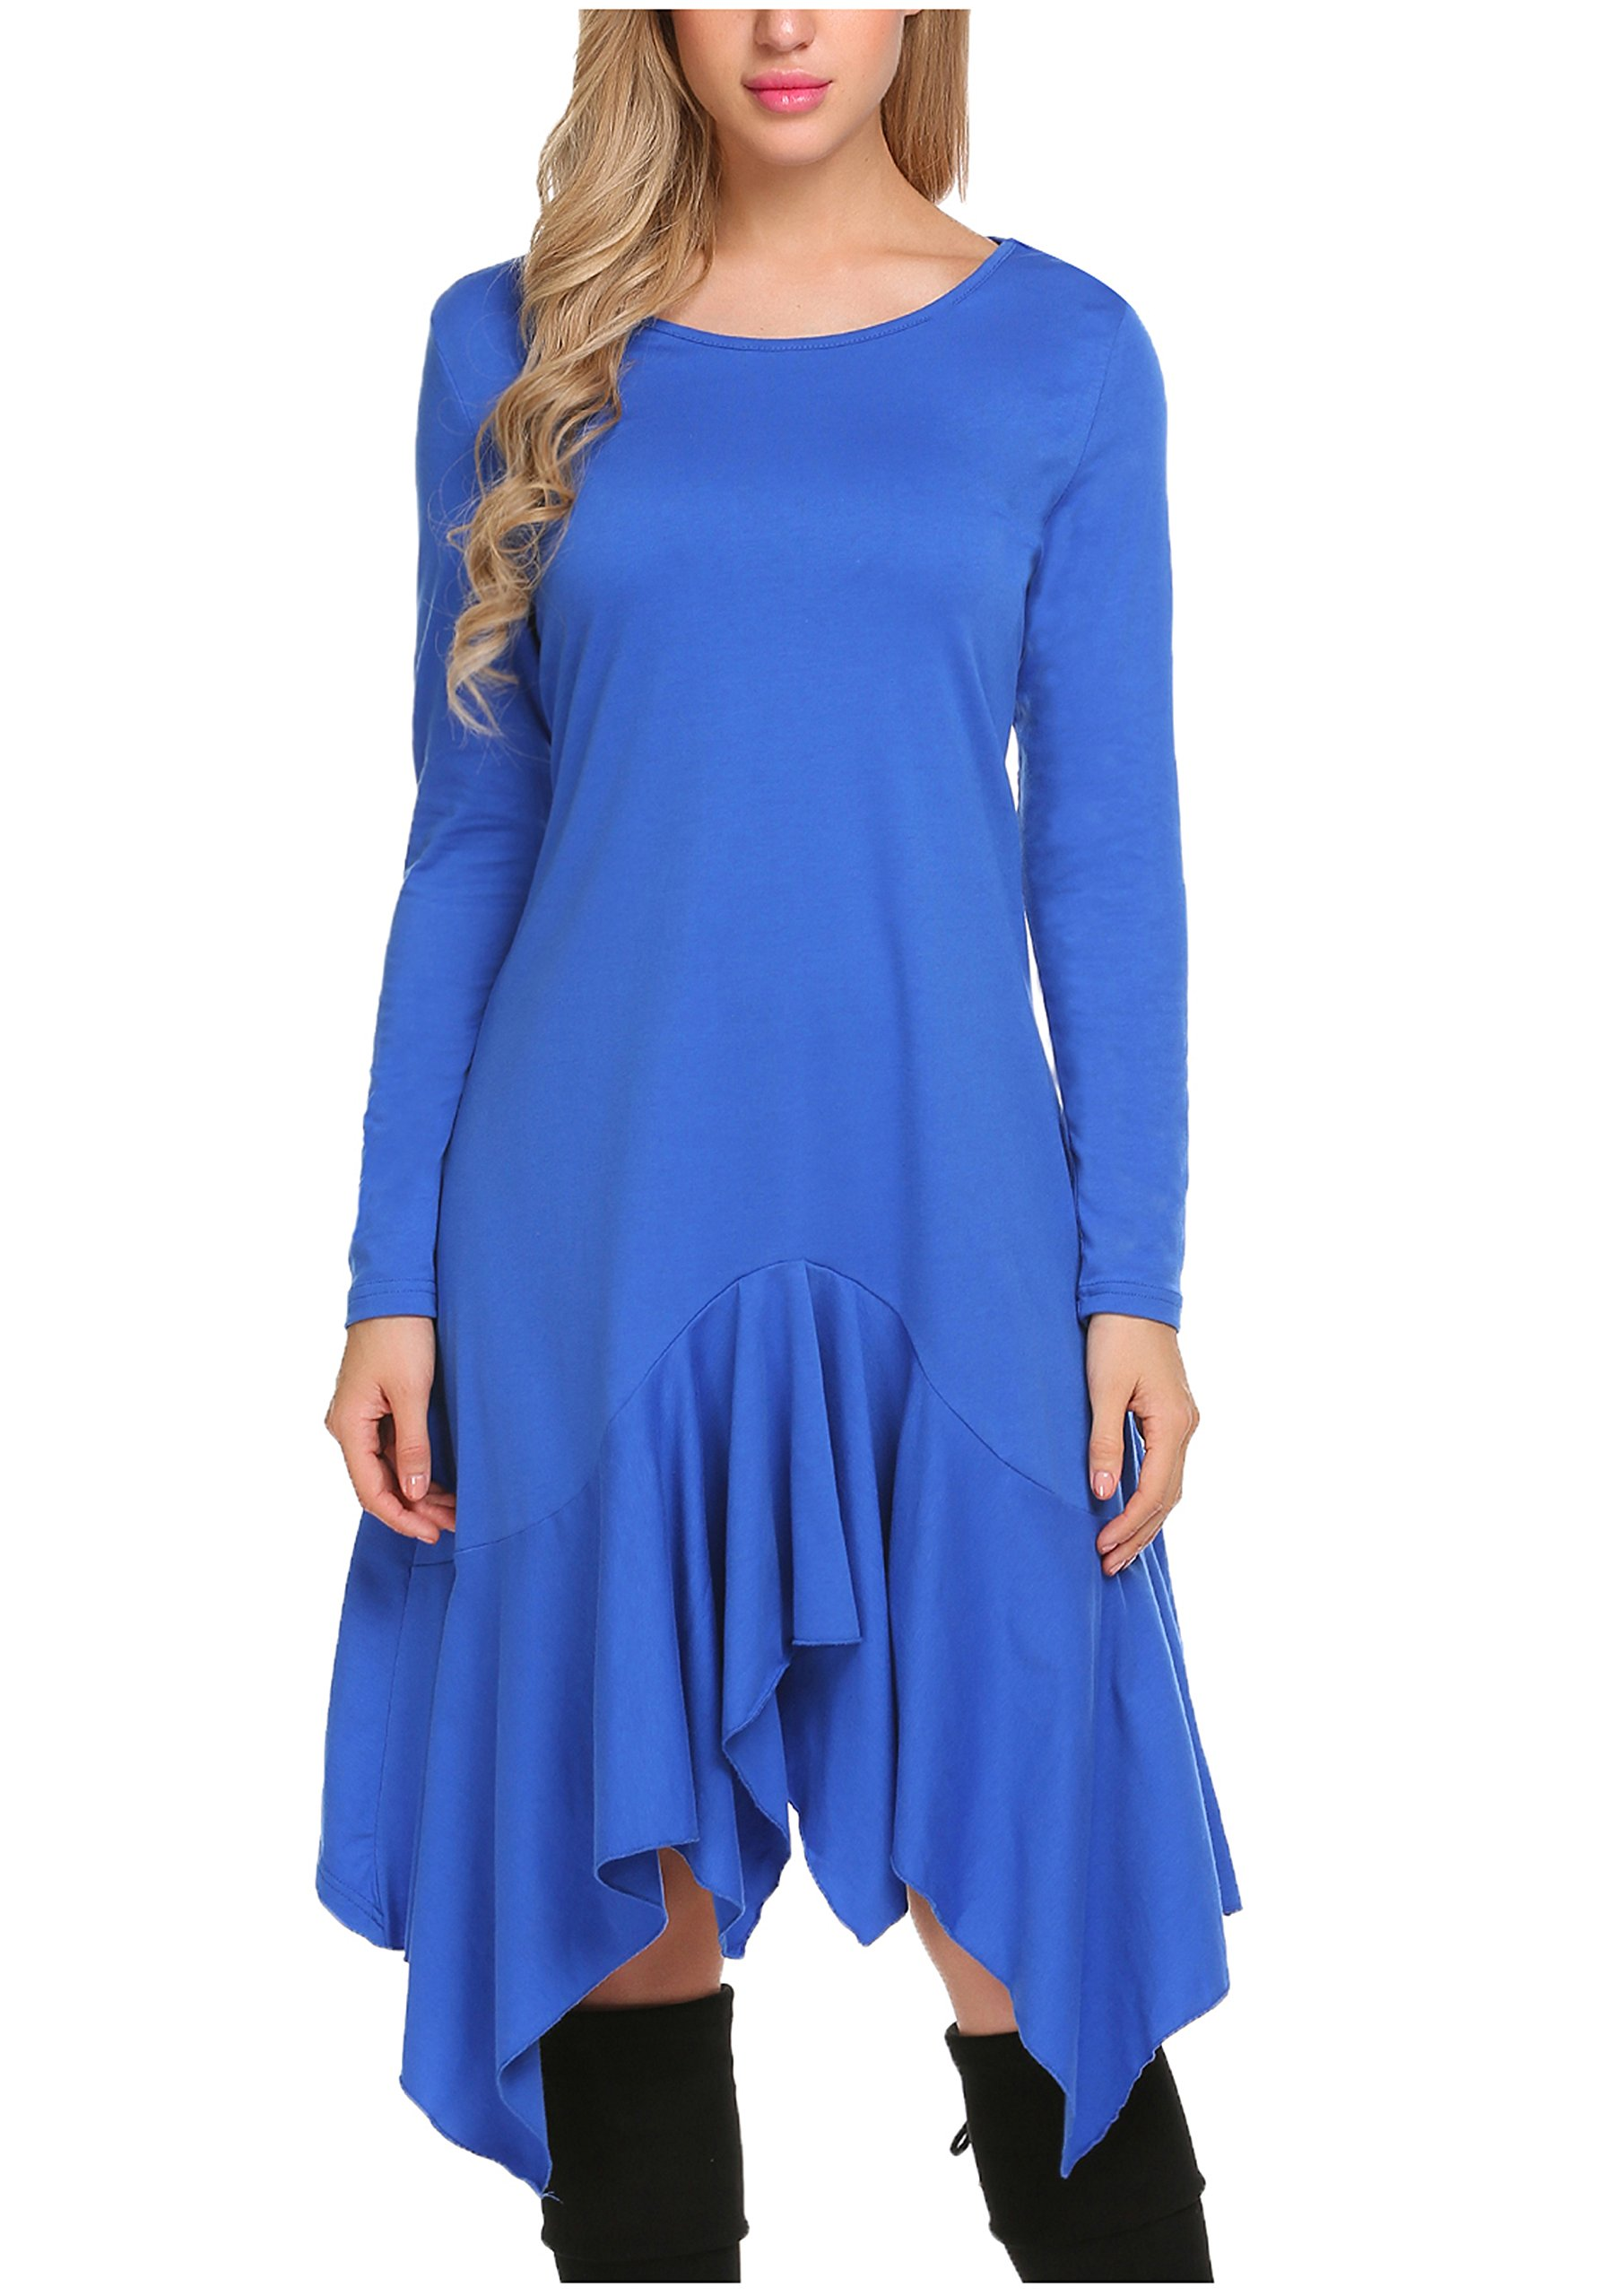 Available at Amazon: Beyove Women's Casual Loose Fit Long Sleeve T Shirt Dress Basic Midi Tunic Dress Light Blue